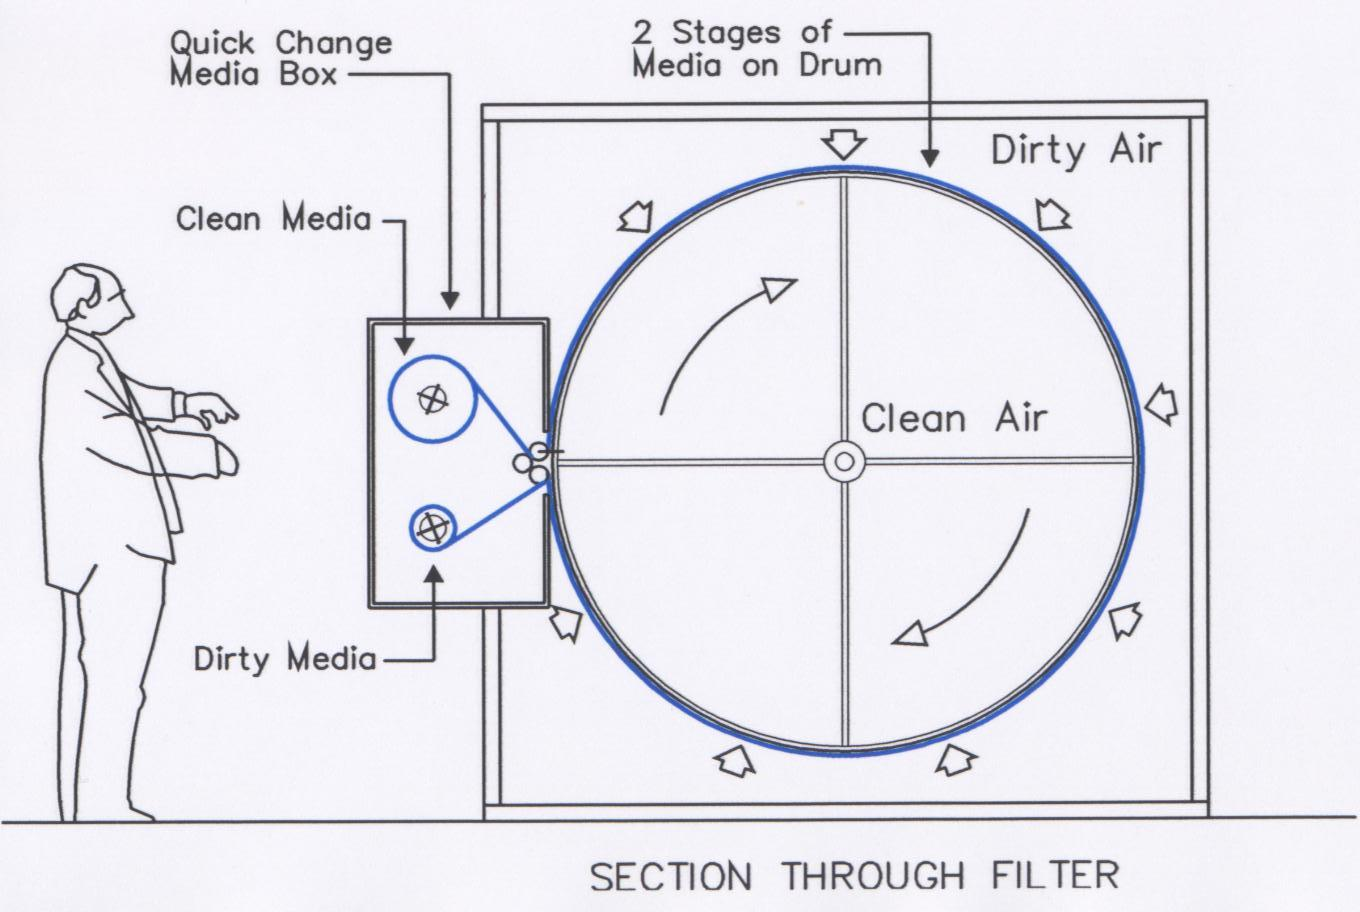 Sketch of the filter operation